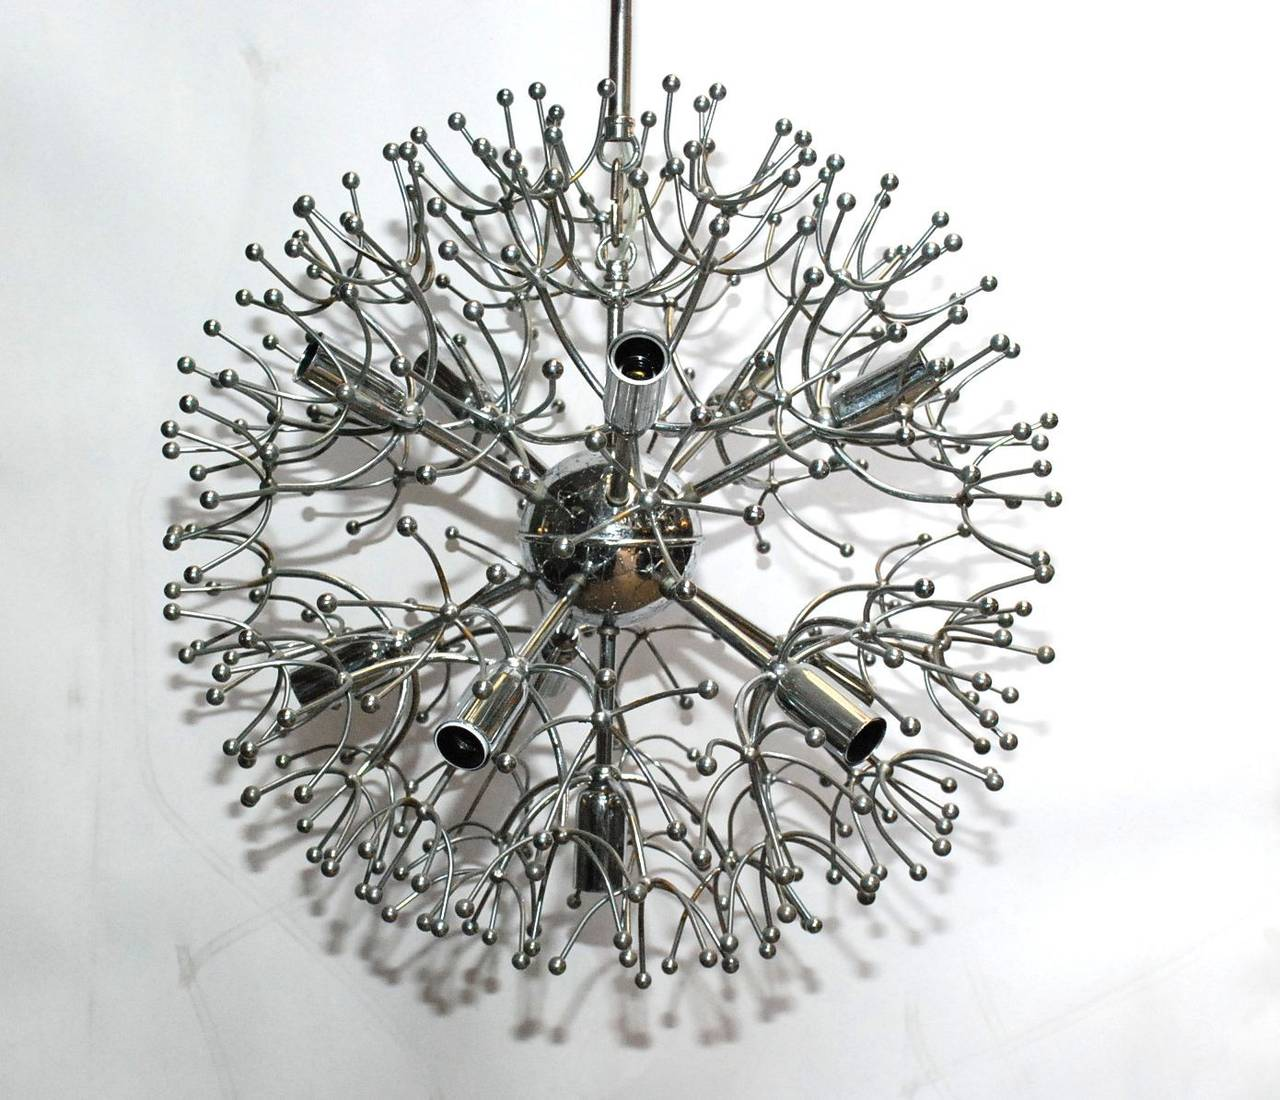 A Sciolari chrome sputnik chandelier with 11-light sockets. Diameter of the fixture is 18